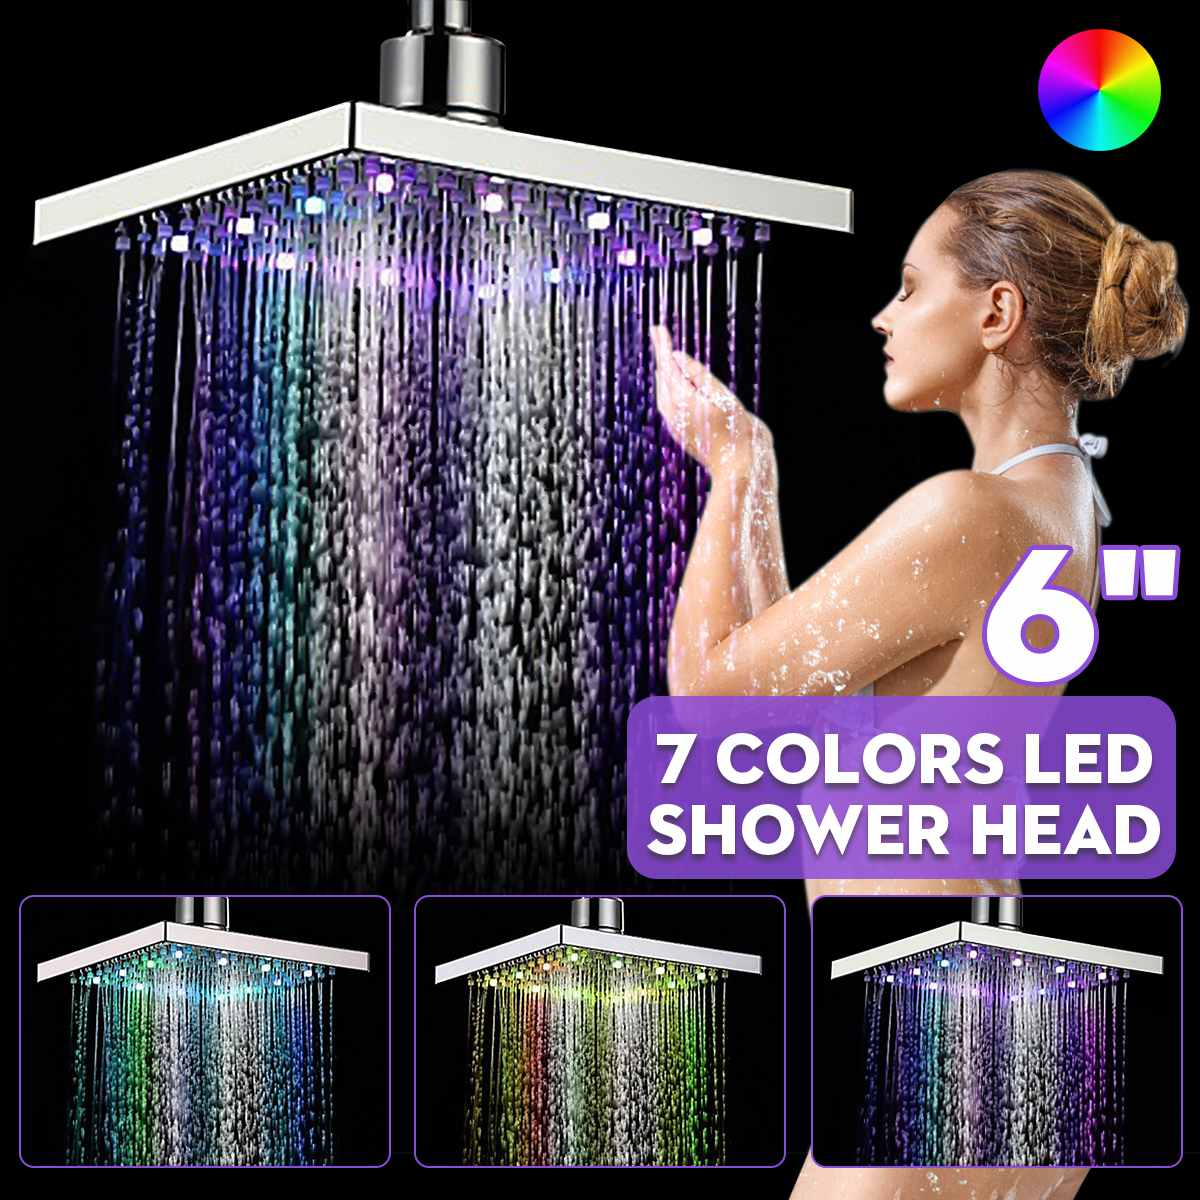 Xueqin 6 Inch ABS Square Rainfall LED Changing Shower Head Adjudtable Water Flow Spray Temperature Sensor Chrome Finish